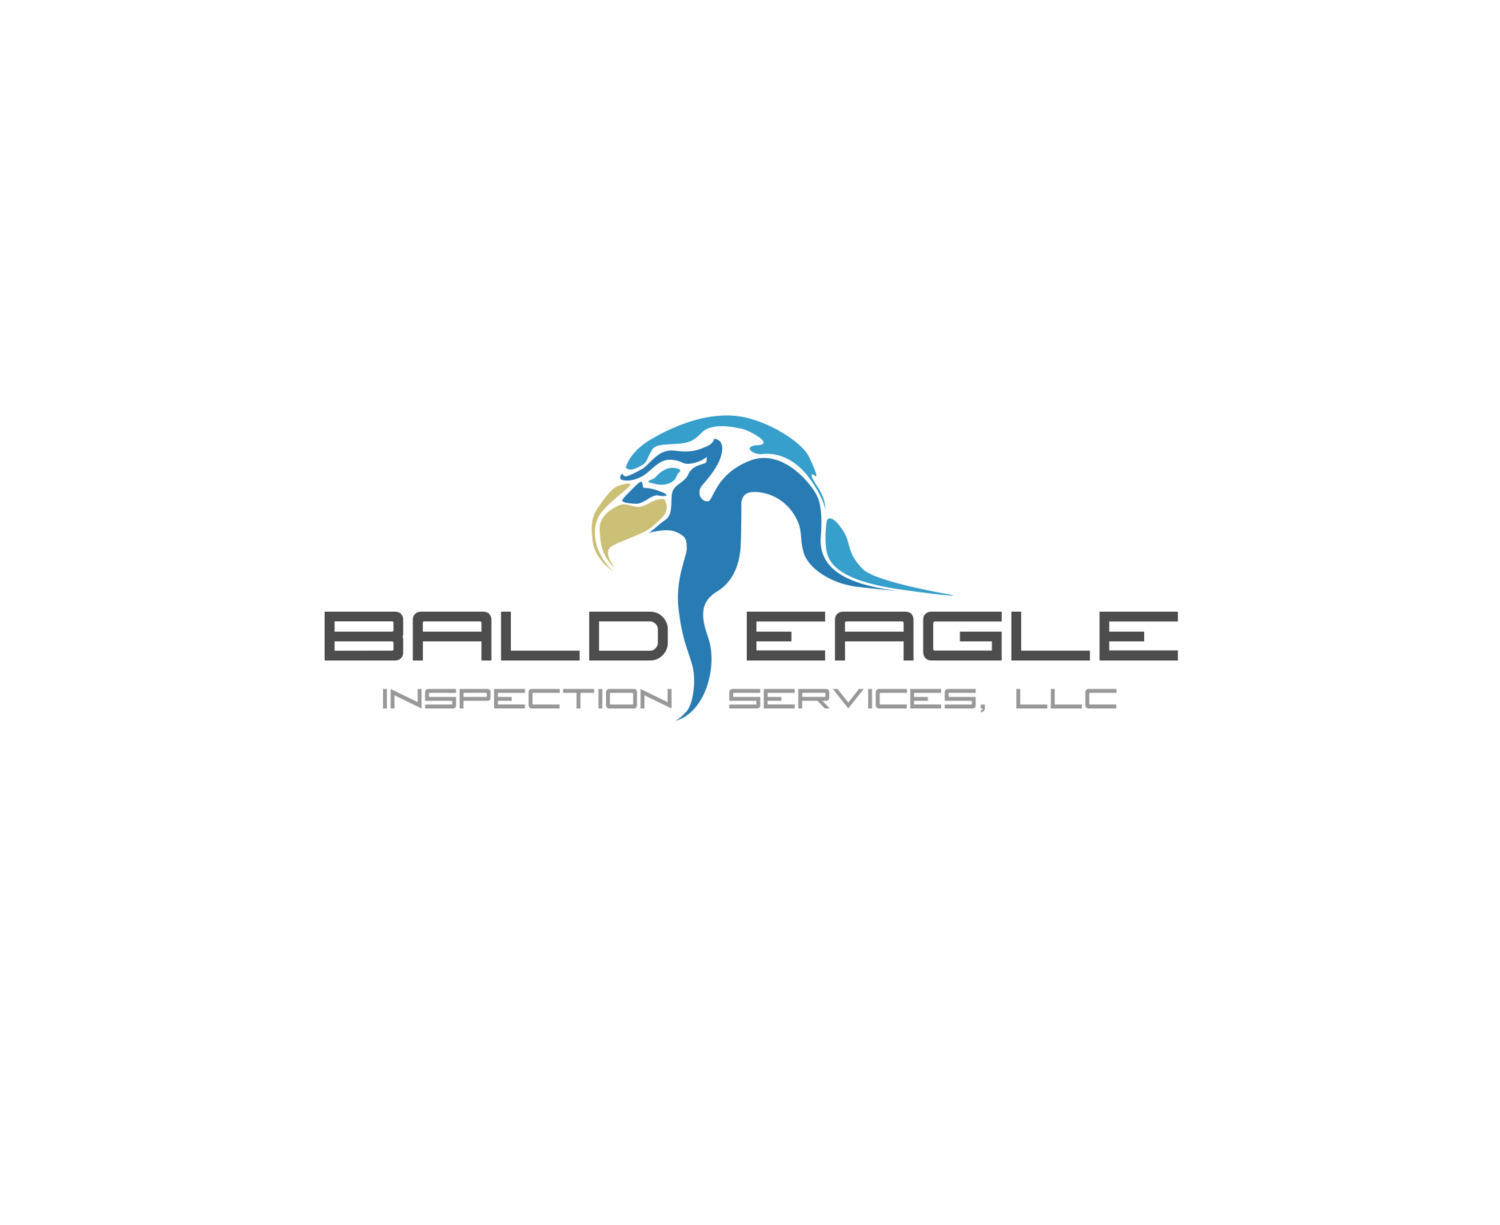 Bald Eagle Inspection Services, LLC